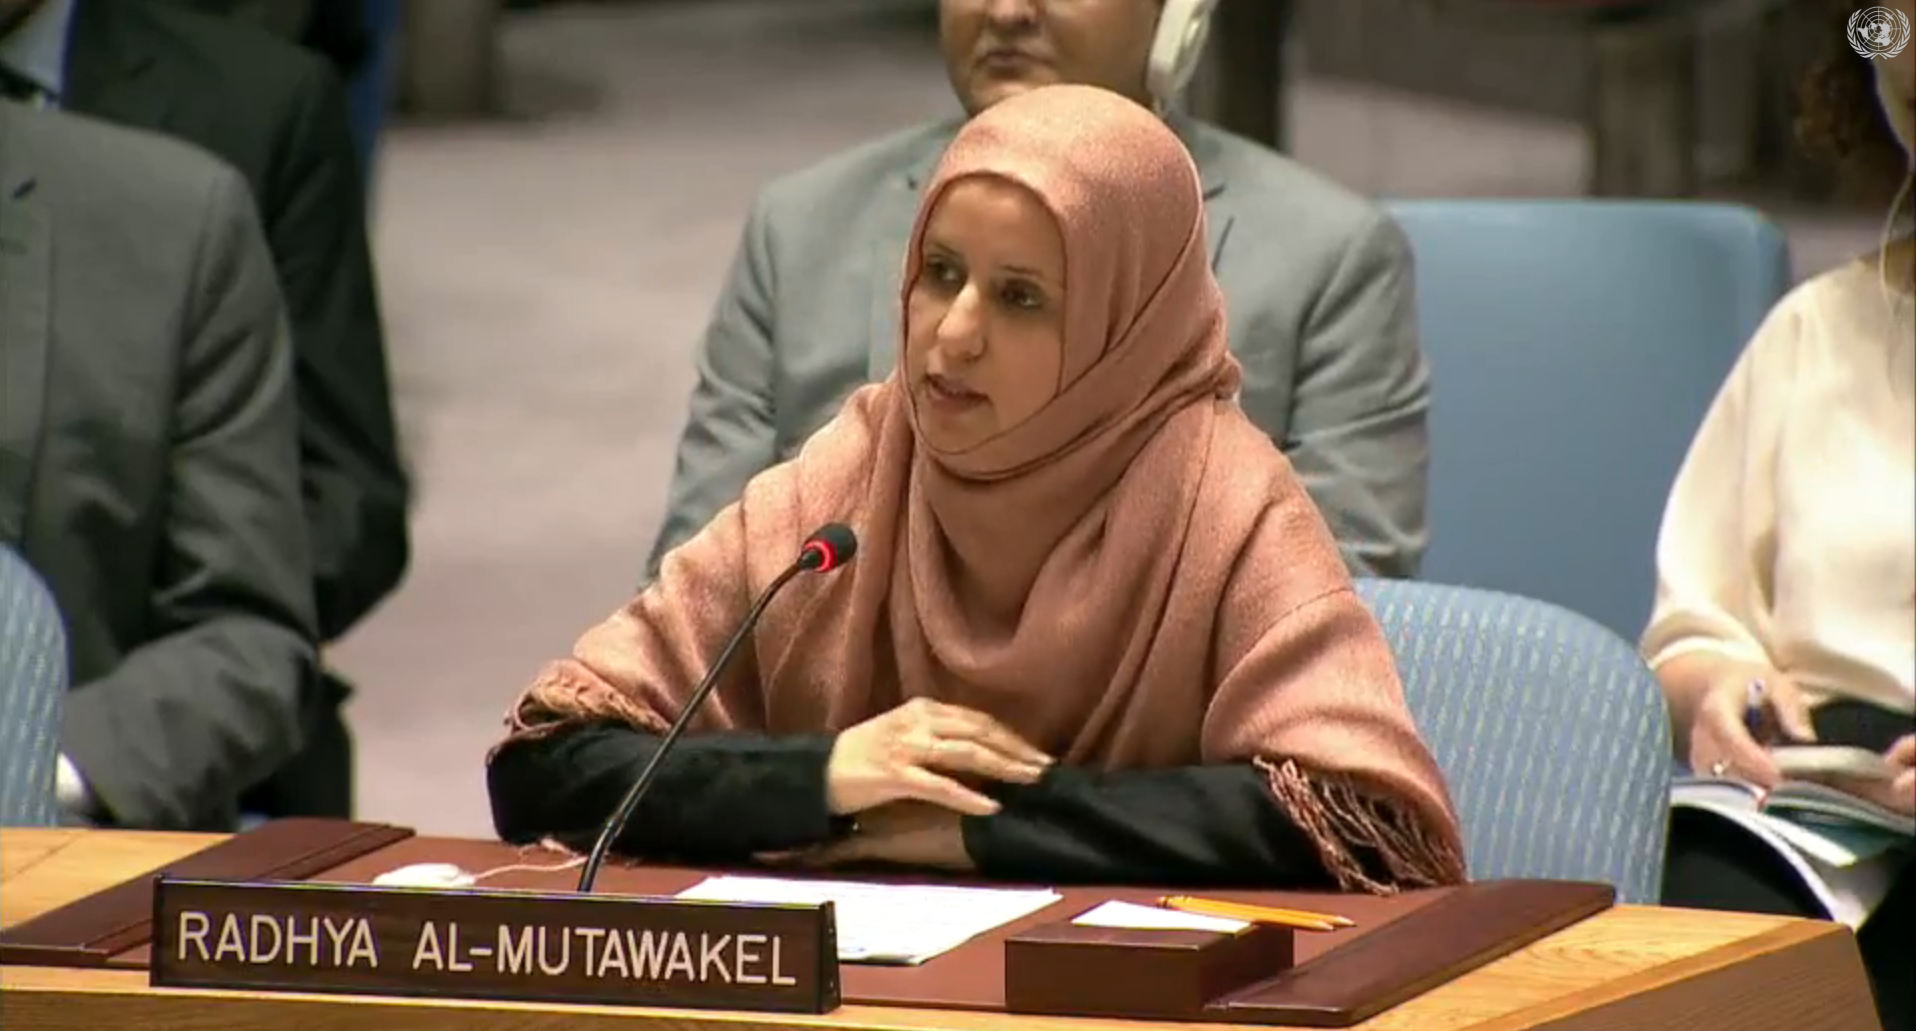 Radhya Almutawakel at a UNSC meeting on Yemen, May 30th, 2017.